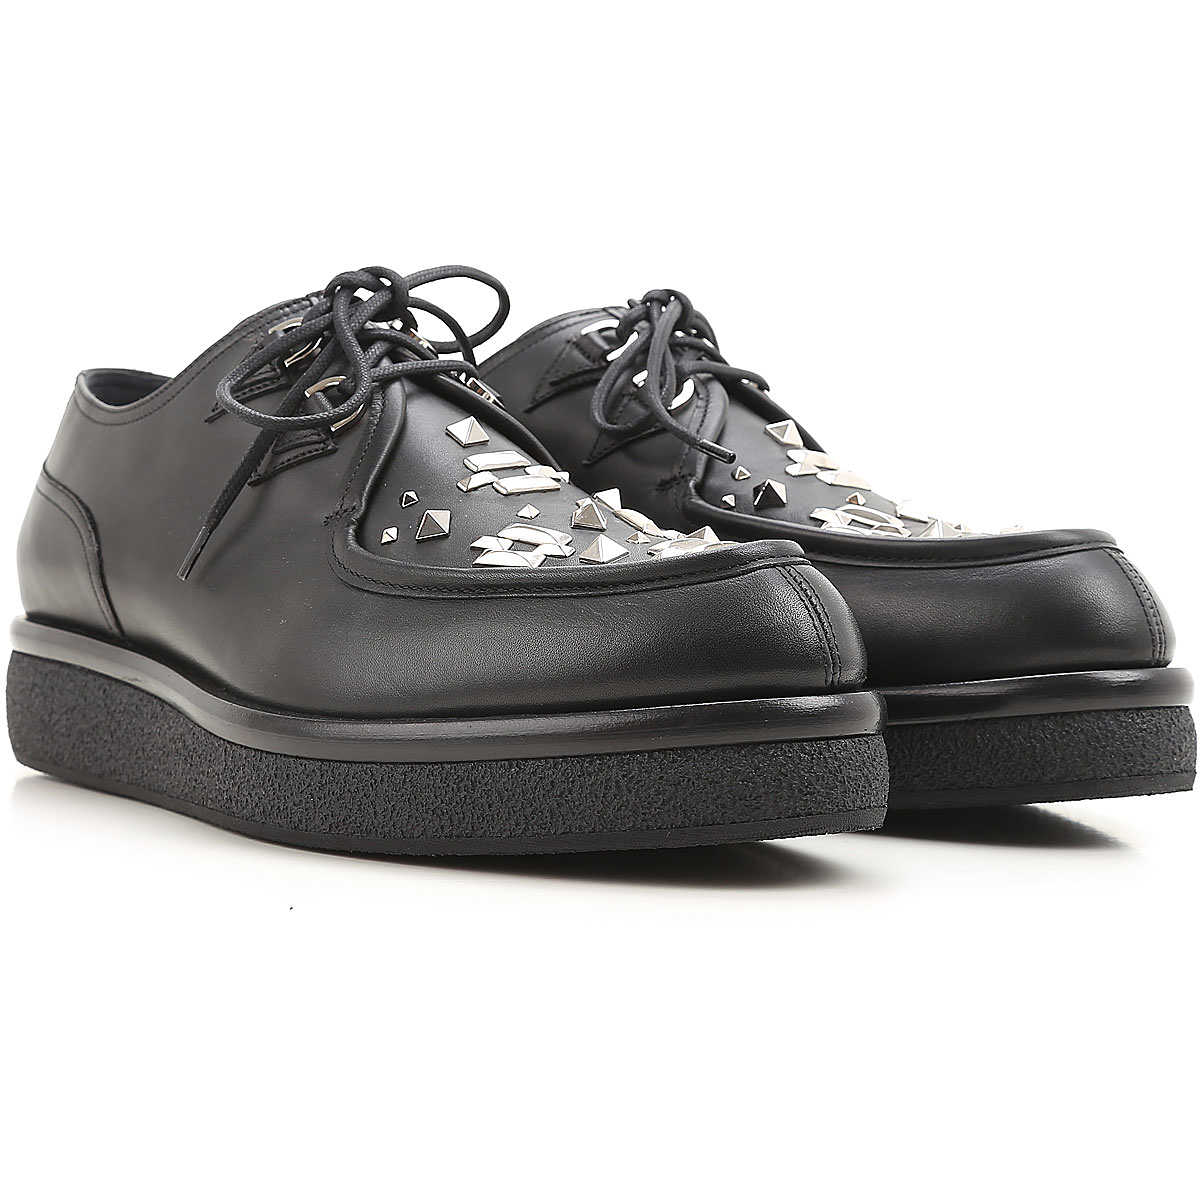 Valentino Garavani Lace Up Shoes for Men Oxfords Derbies and Brogues On Sale in Outlet - GOOFASH